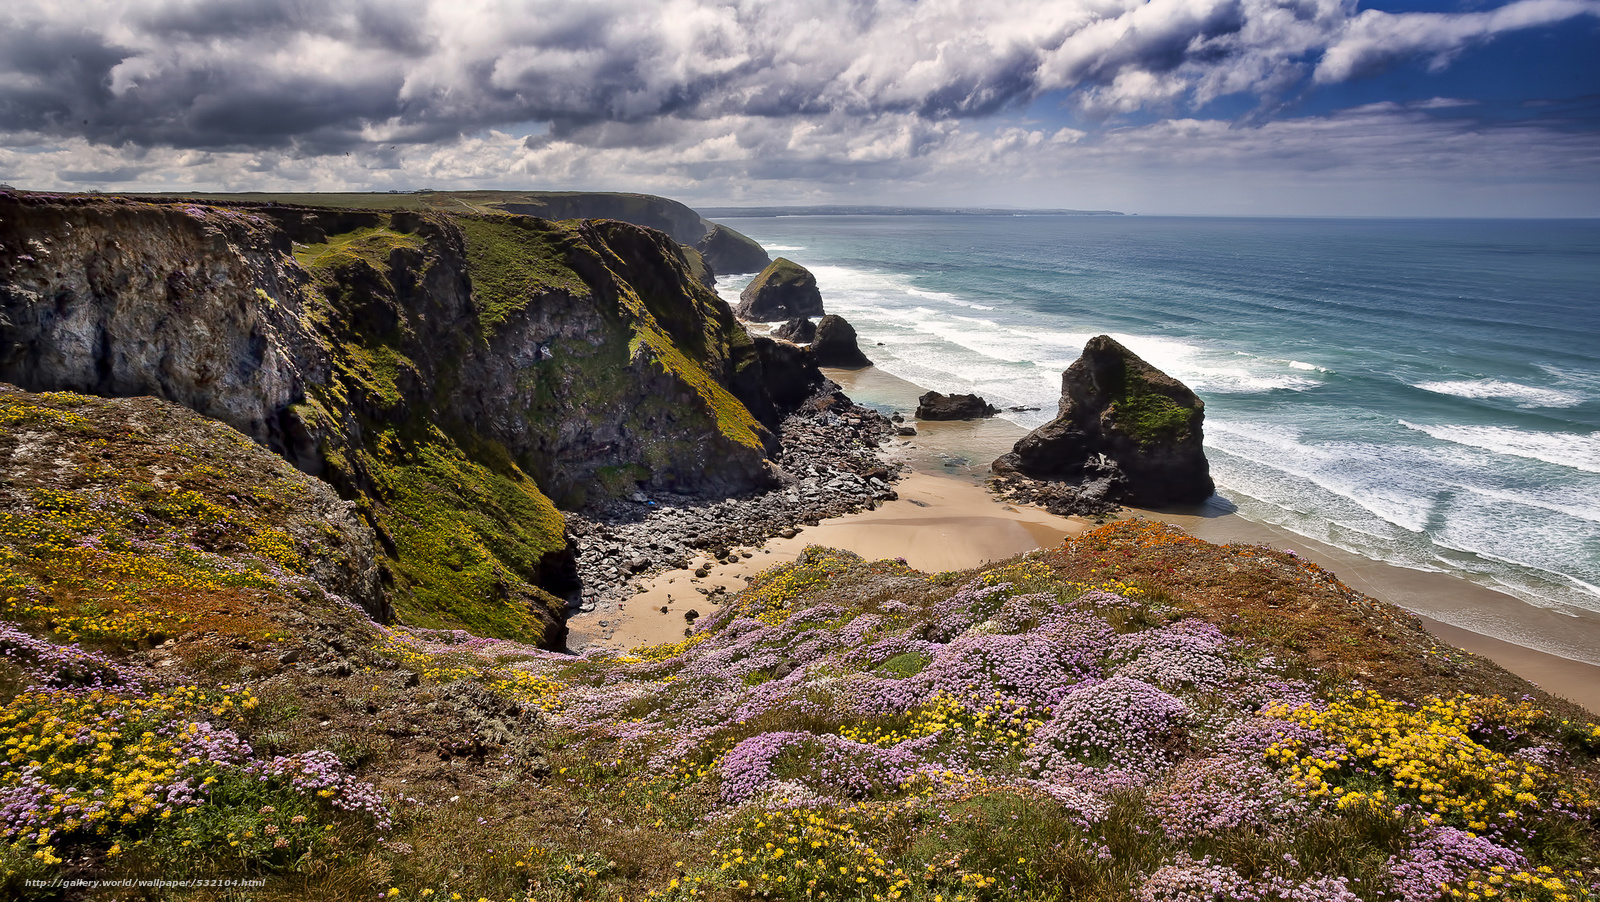 Download Hintergrund Bedruthan Schritte Cornwall England HD Wallpapers Download Free Images Wallpaper [1000image.com]